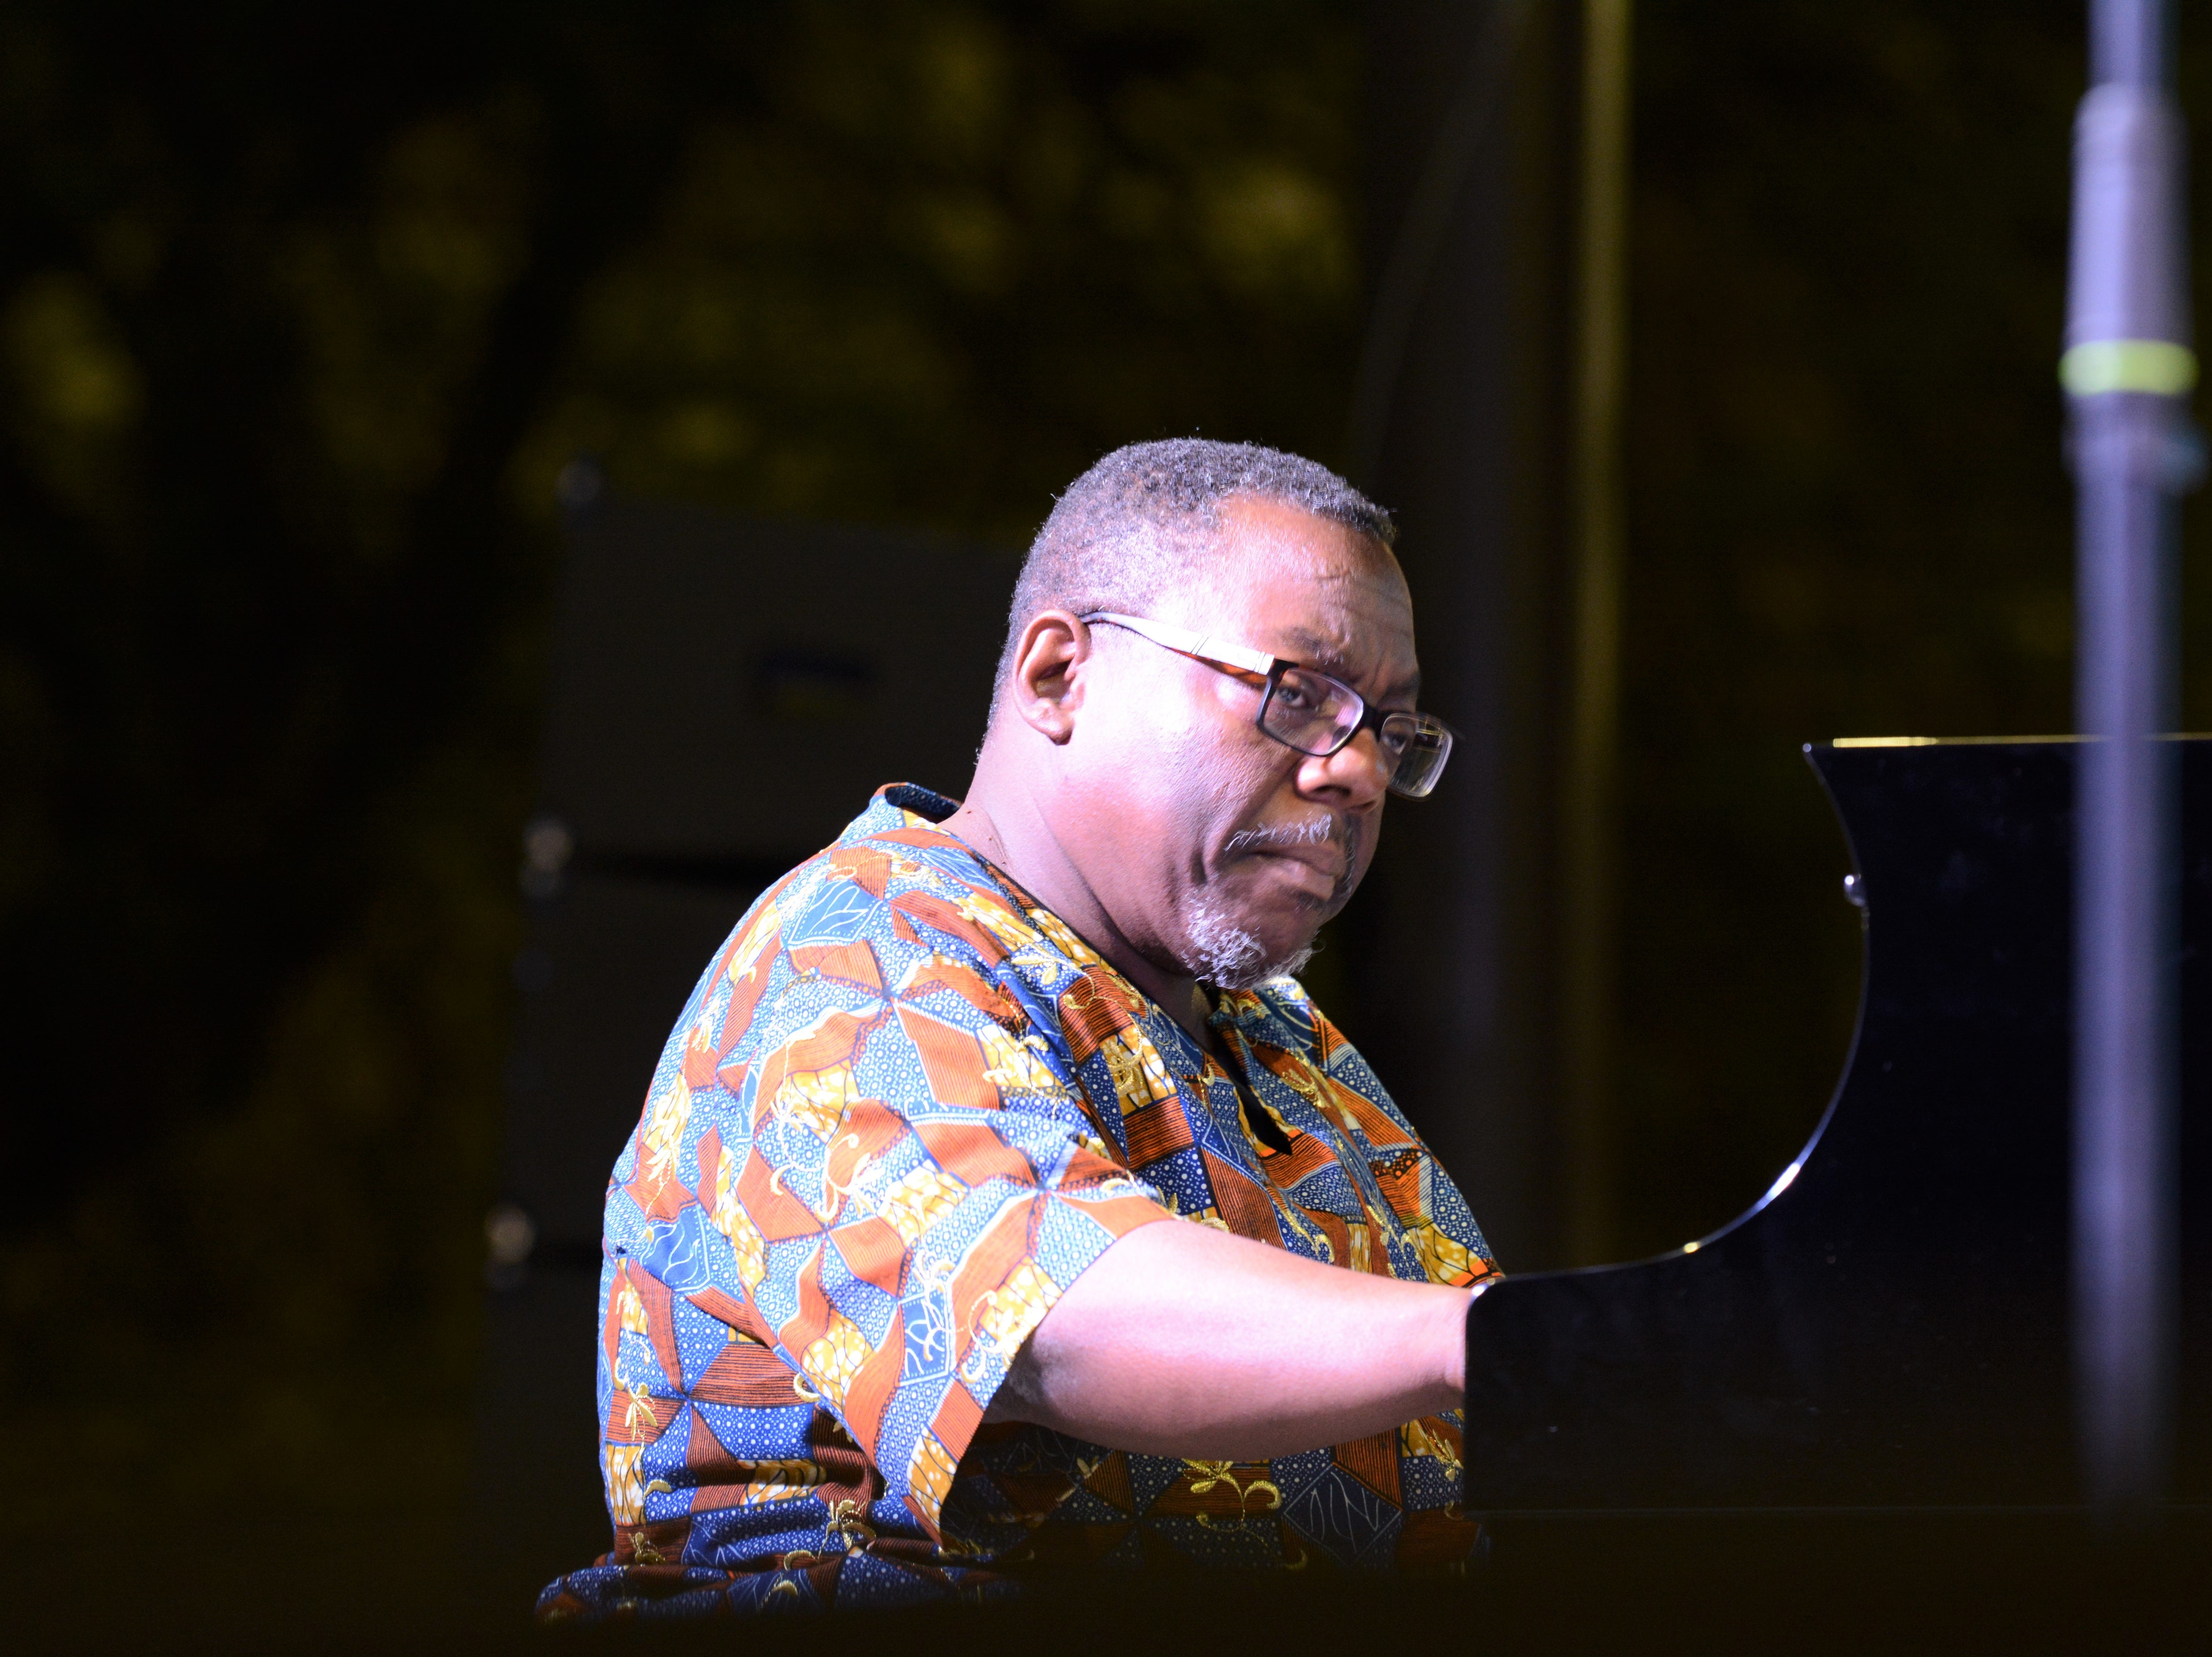 Pianist Cyrus Chestnut performs with the Dizzy Gillespie All-Star Band at the Chandler Jazz Festival on April 6, 2019.